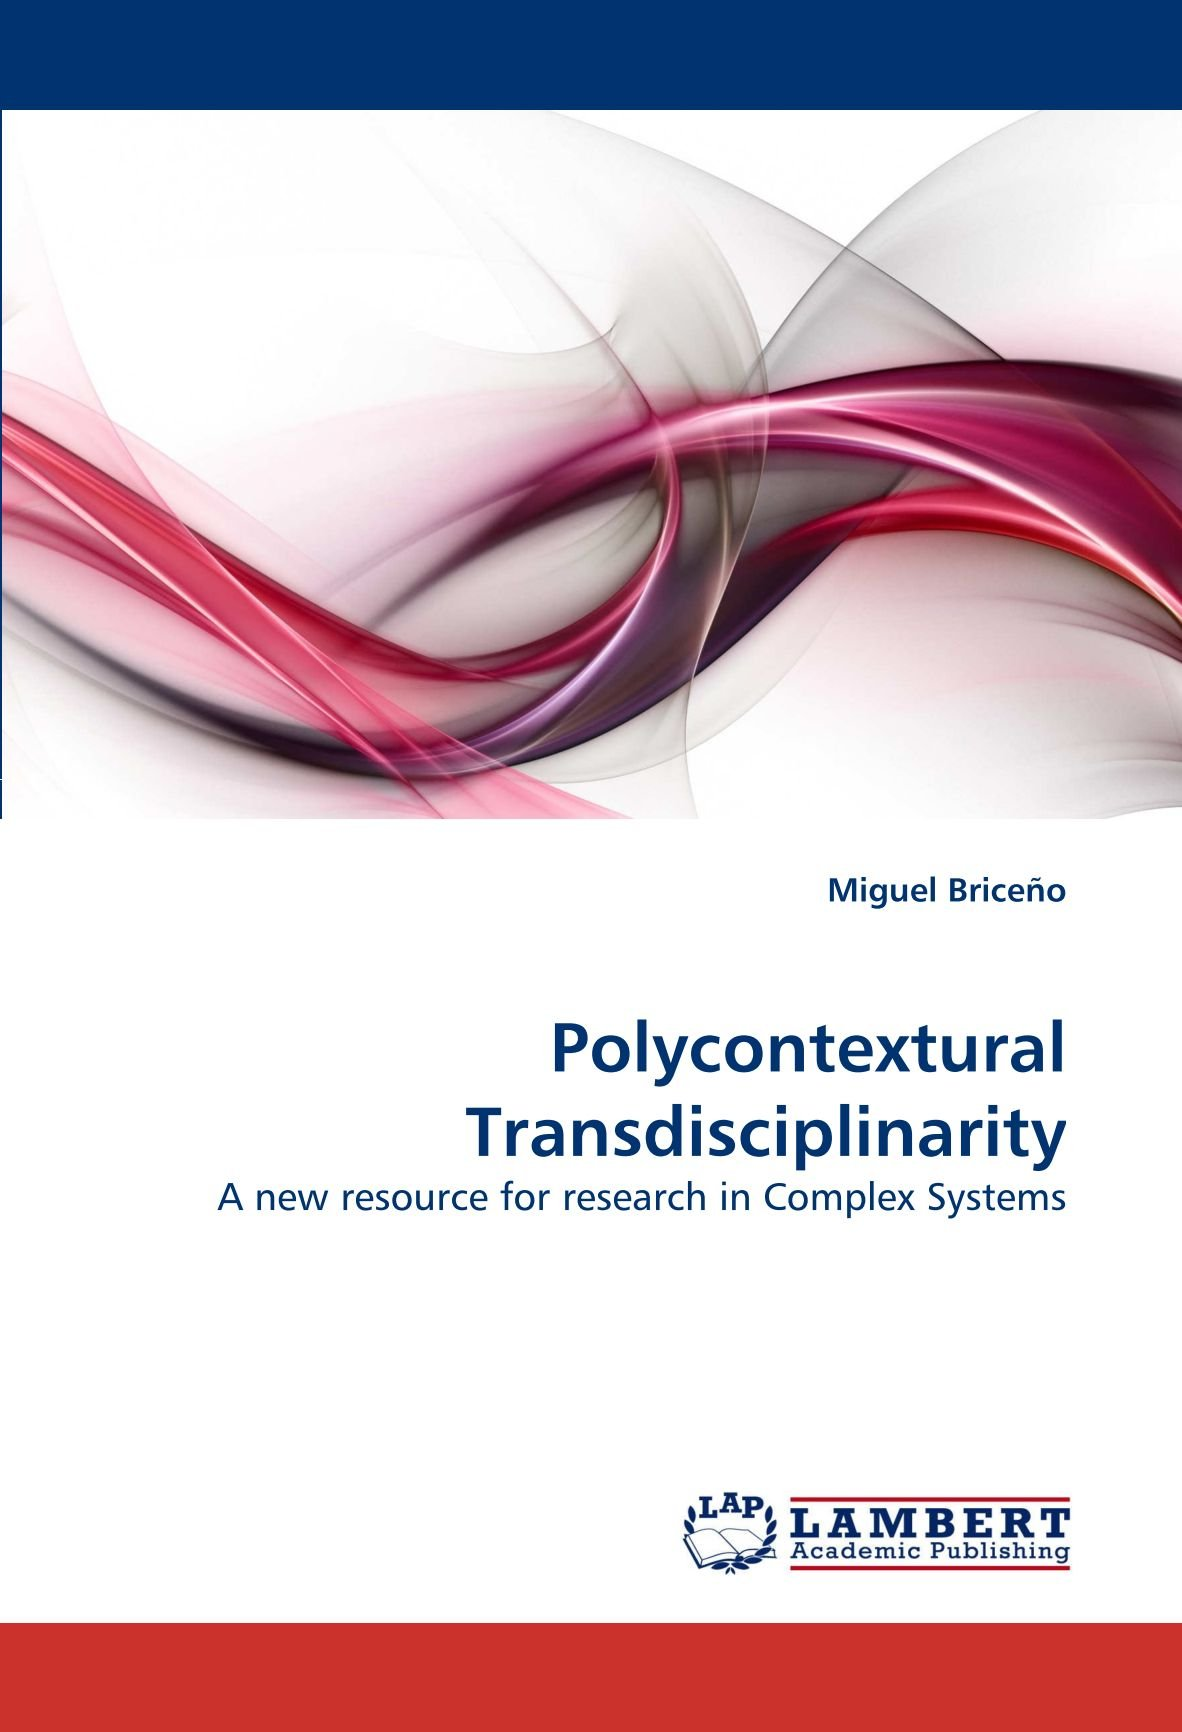 Polycontextural Transdisciplinarity: A new resource for research in Complex Systems pdf